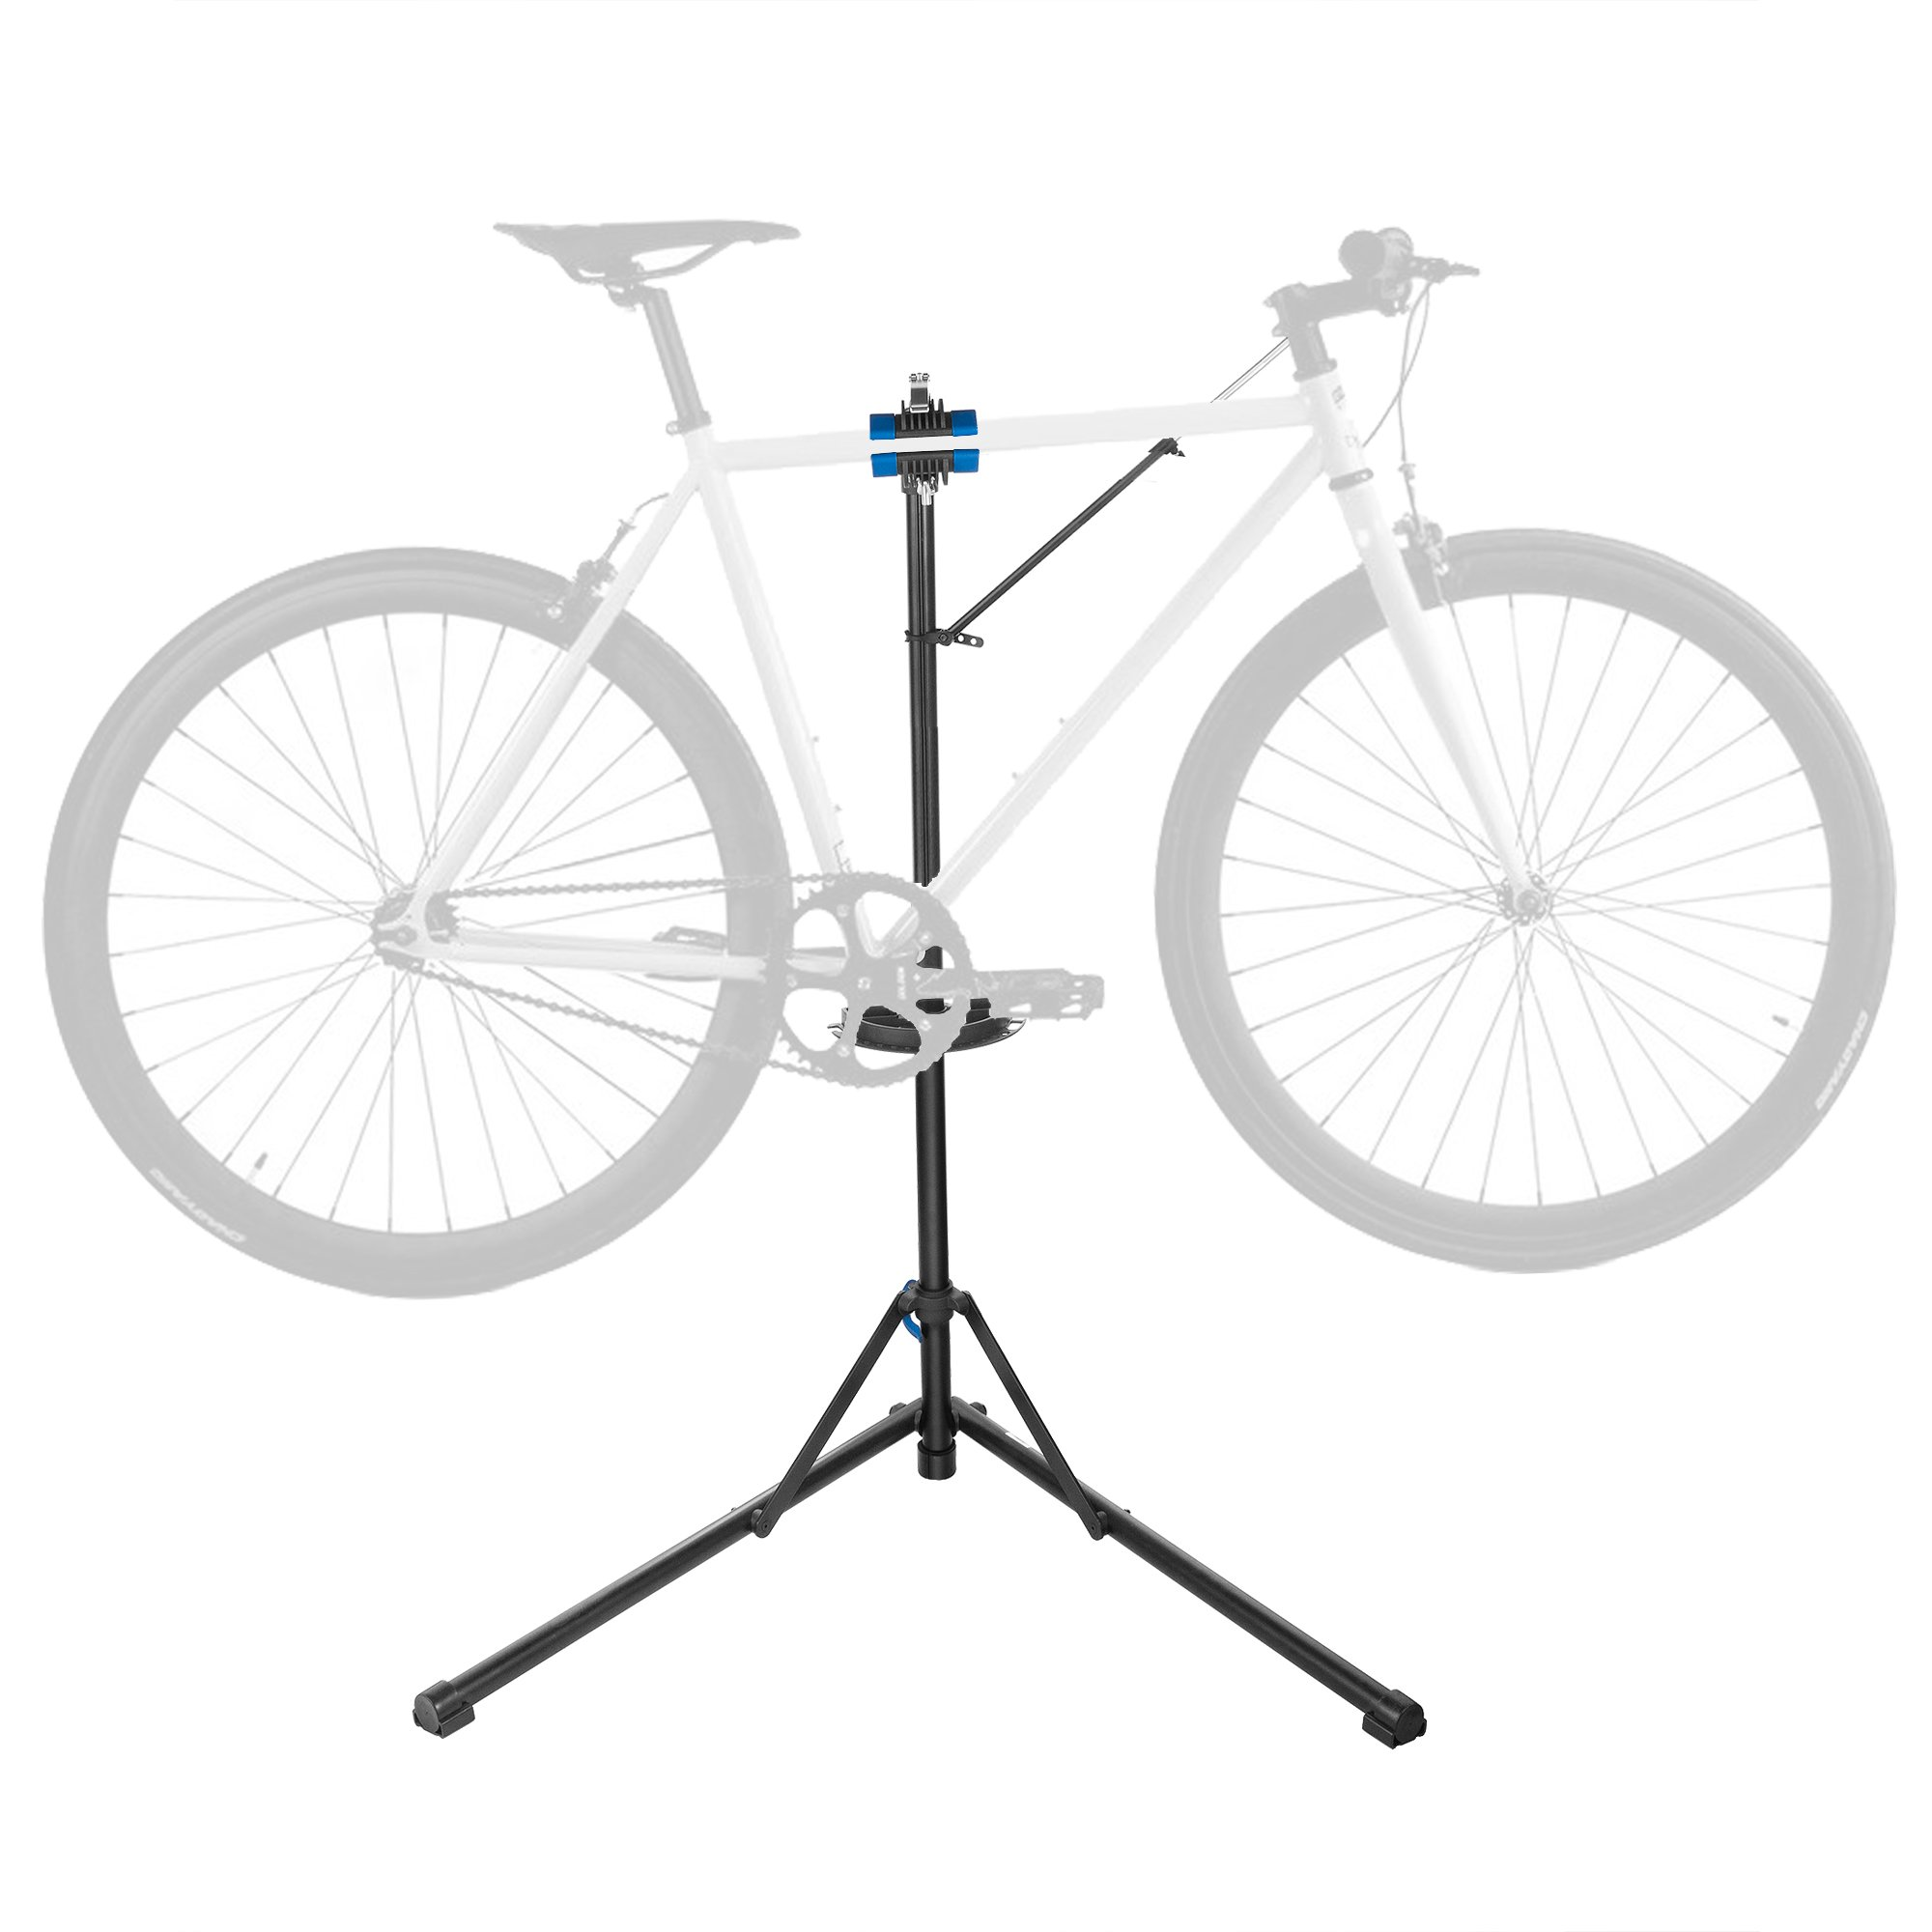 RAD Cycle Products 83-DT5232 2002 Pro Plus Bicycle Adjustable Repair Stand